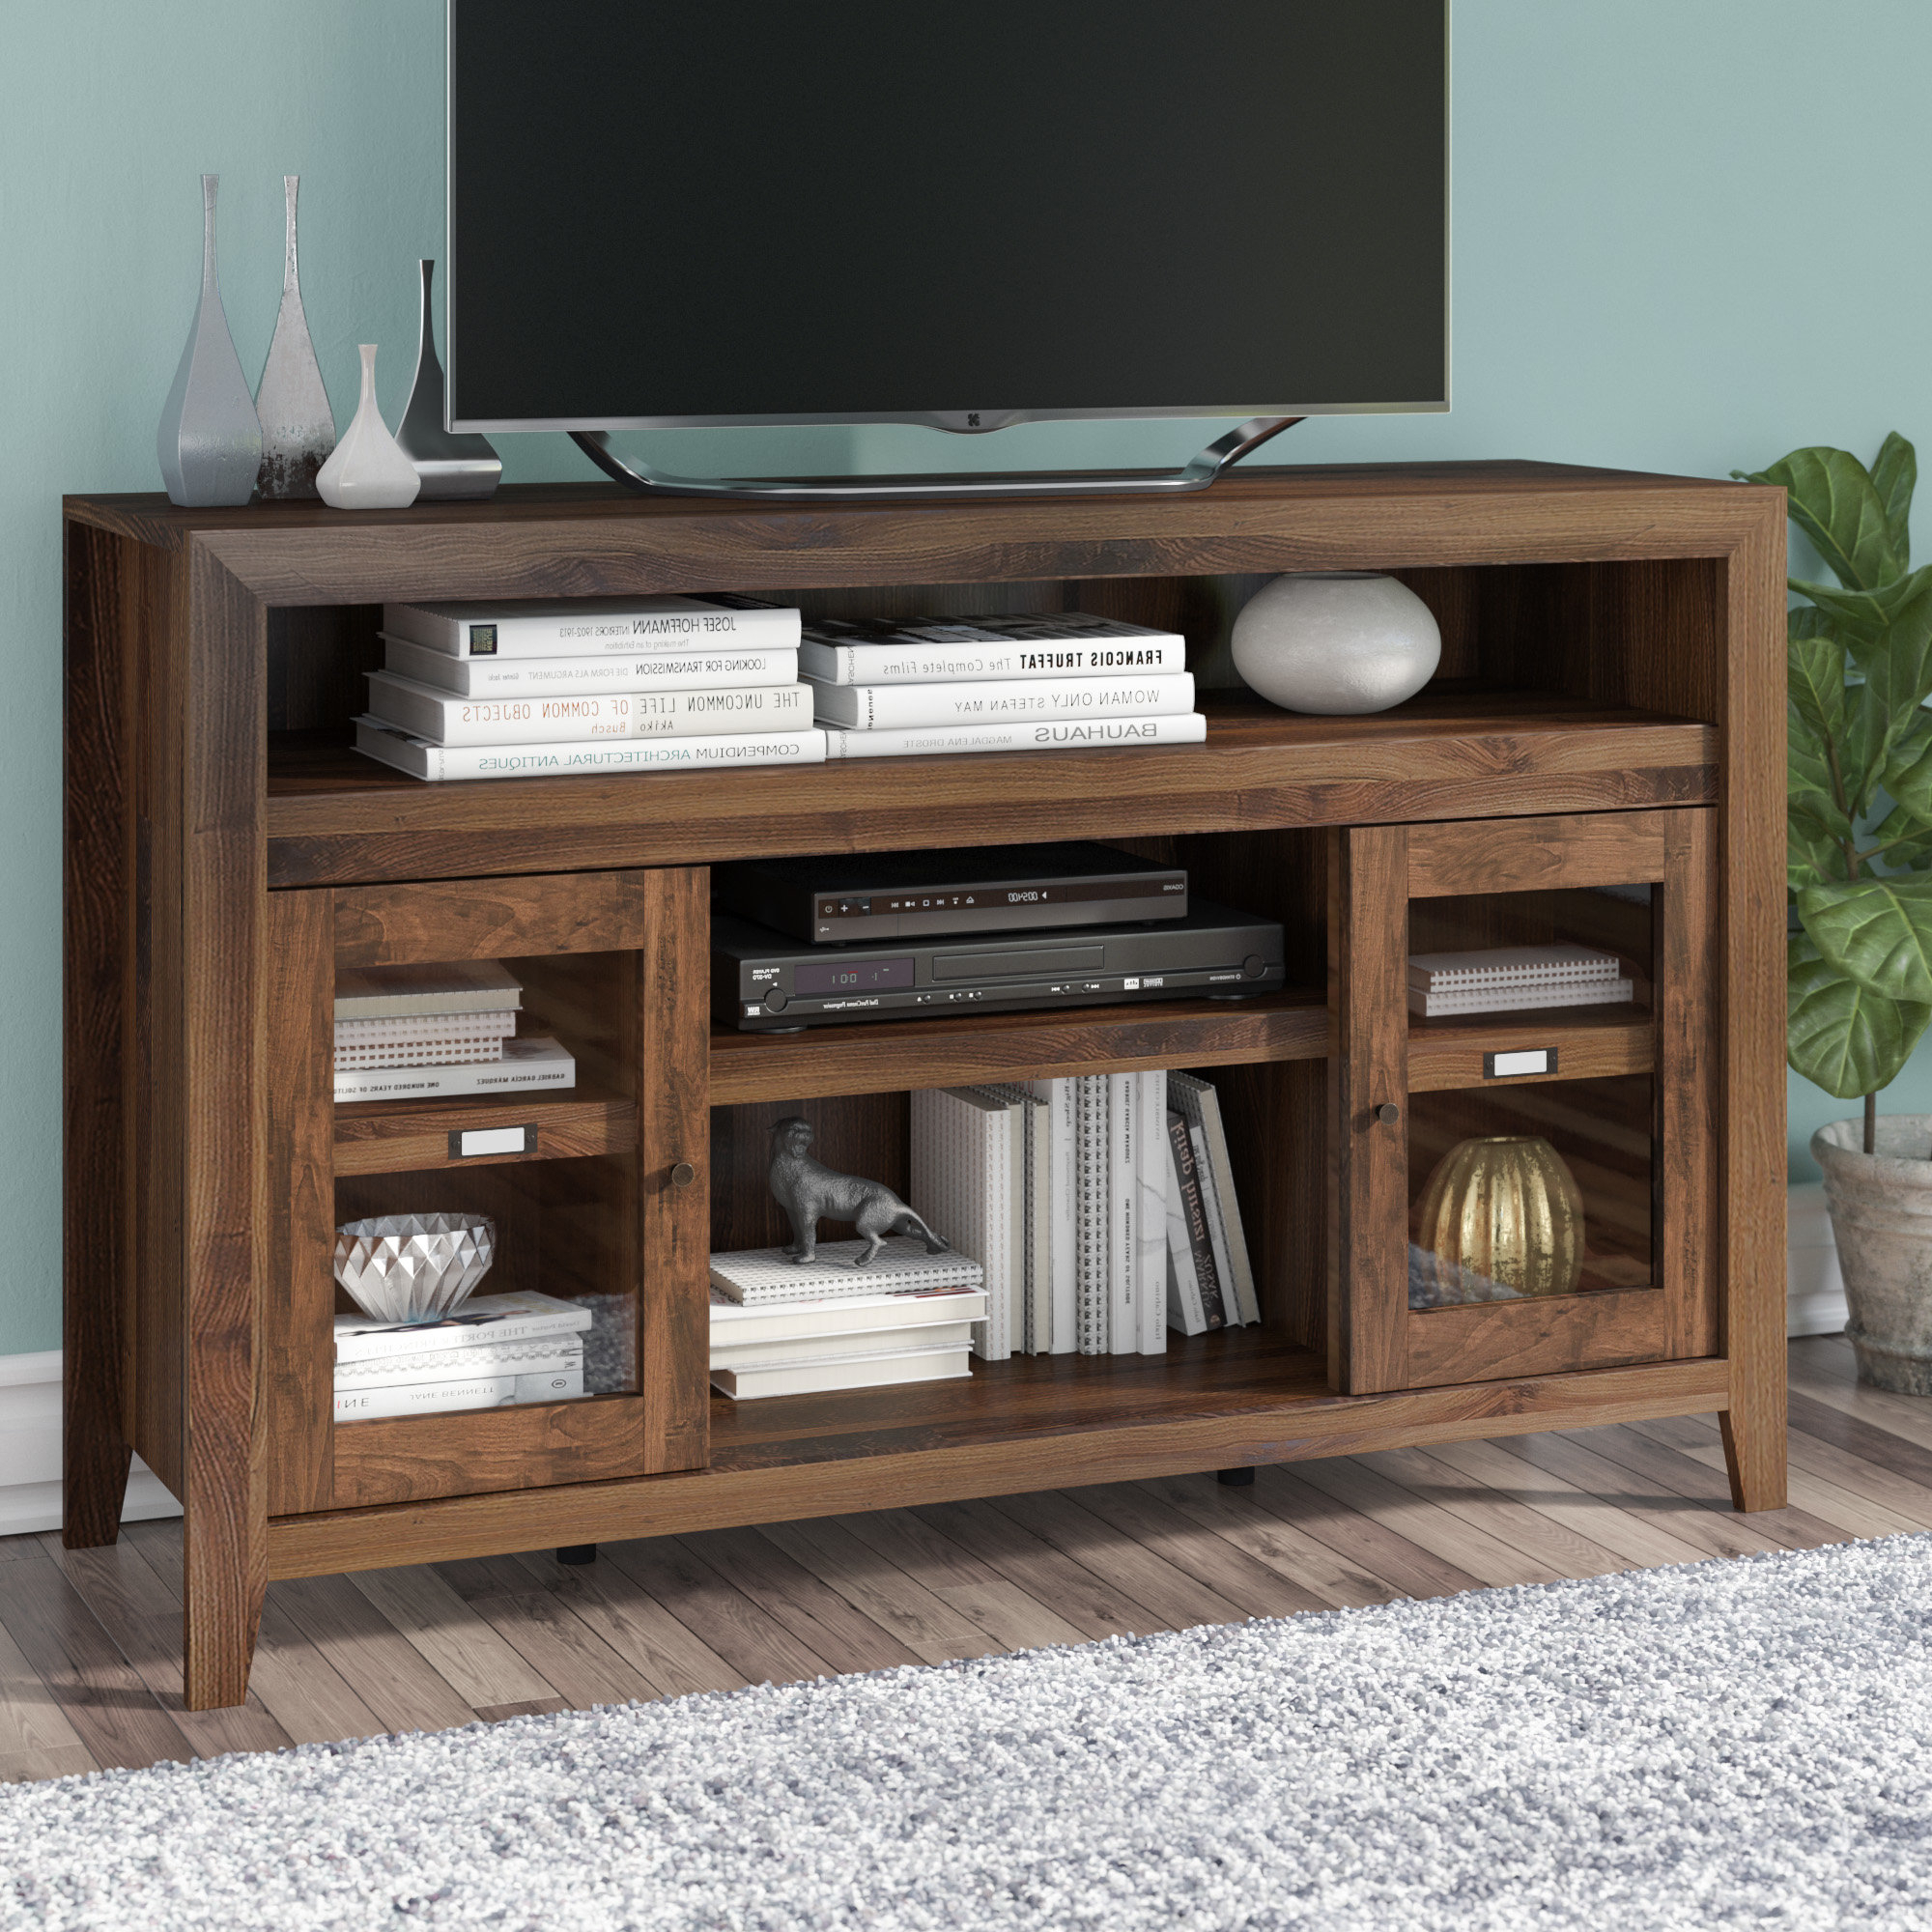 Tall Tv Stands You'll Love | Wayfair For Canyon 54 Inch Tv Stands (Gallery 13 of 20)